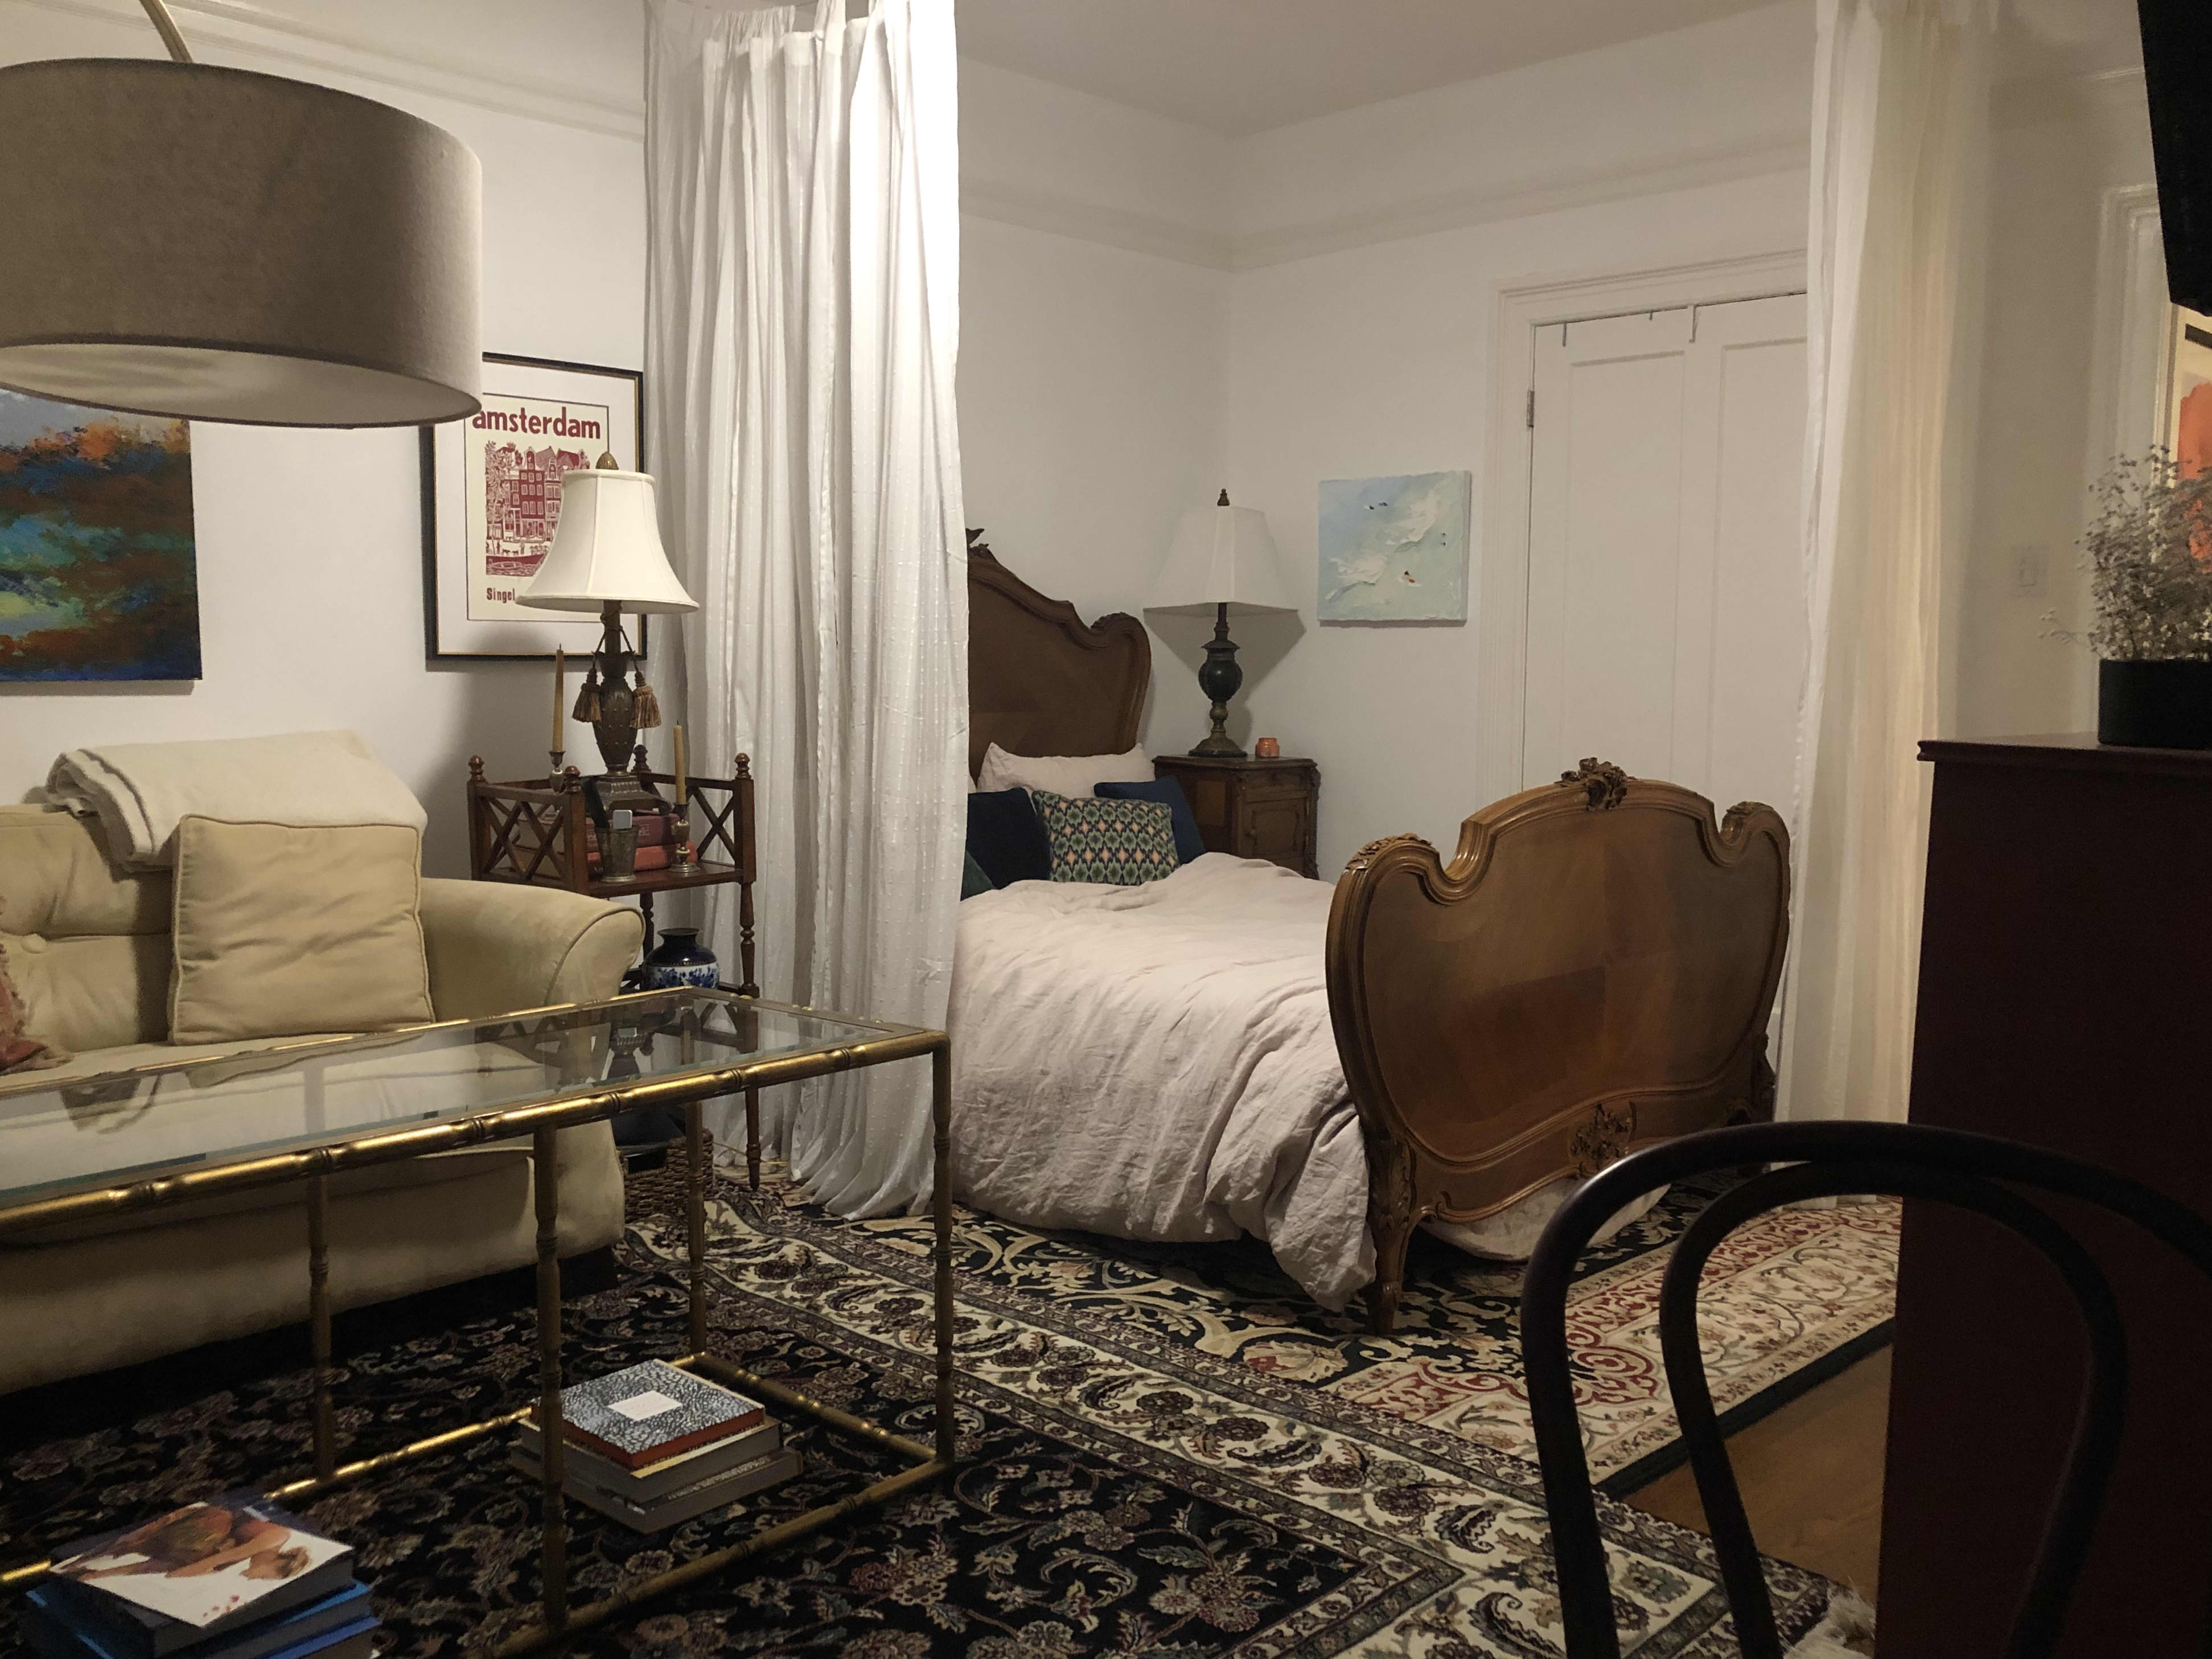 Studio Apartment Old World Style in San Francisco Home ...